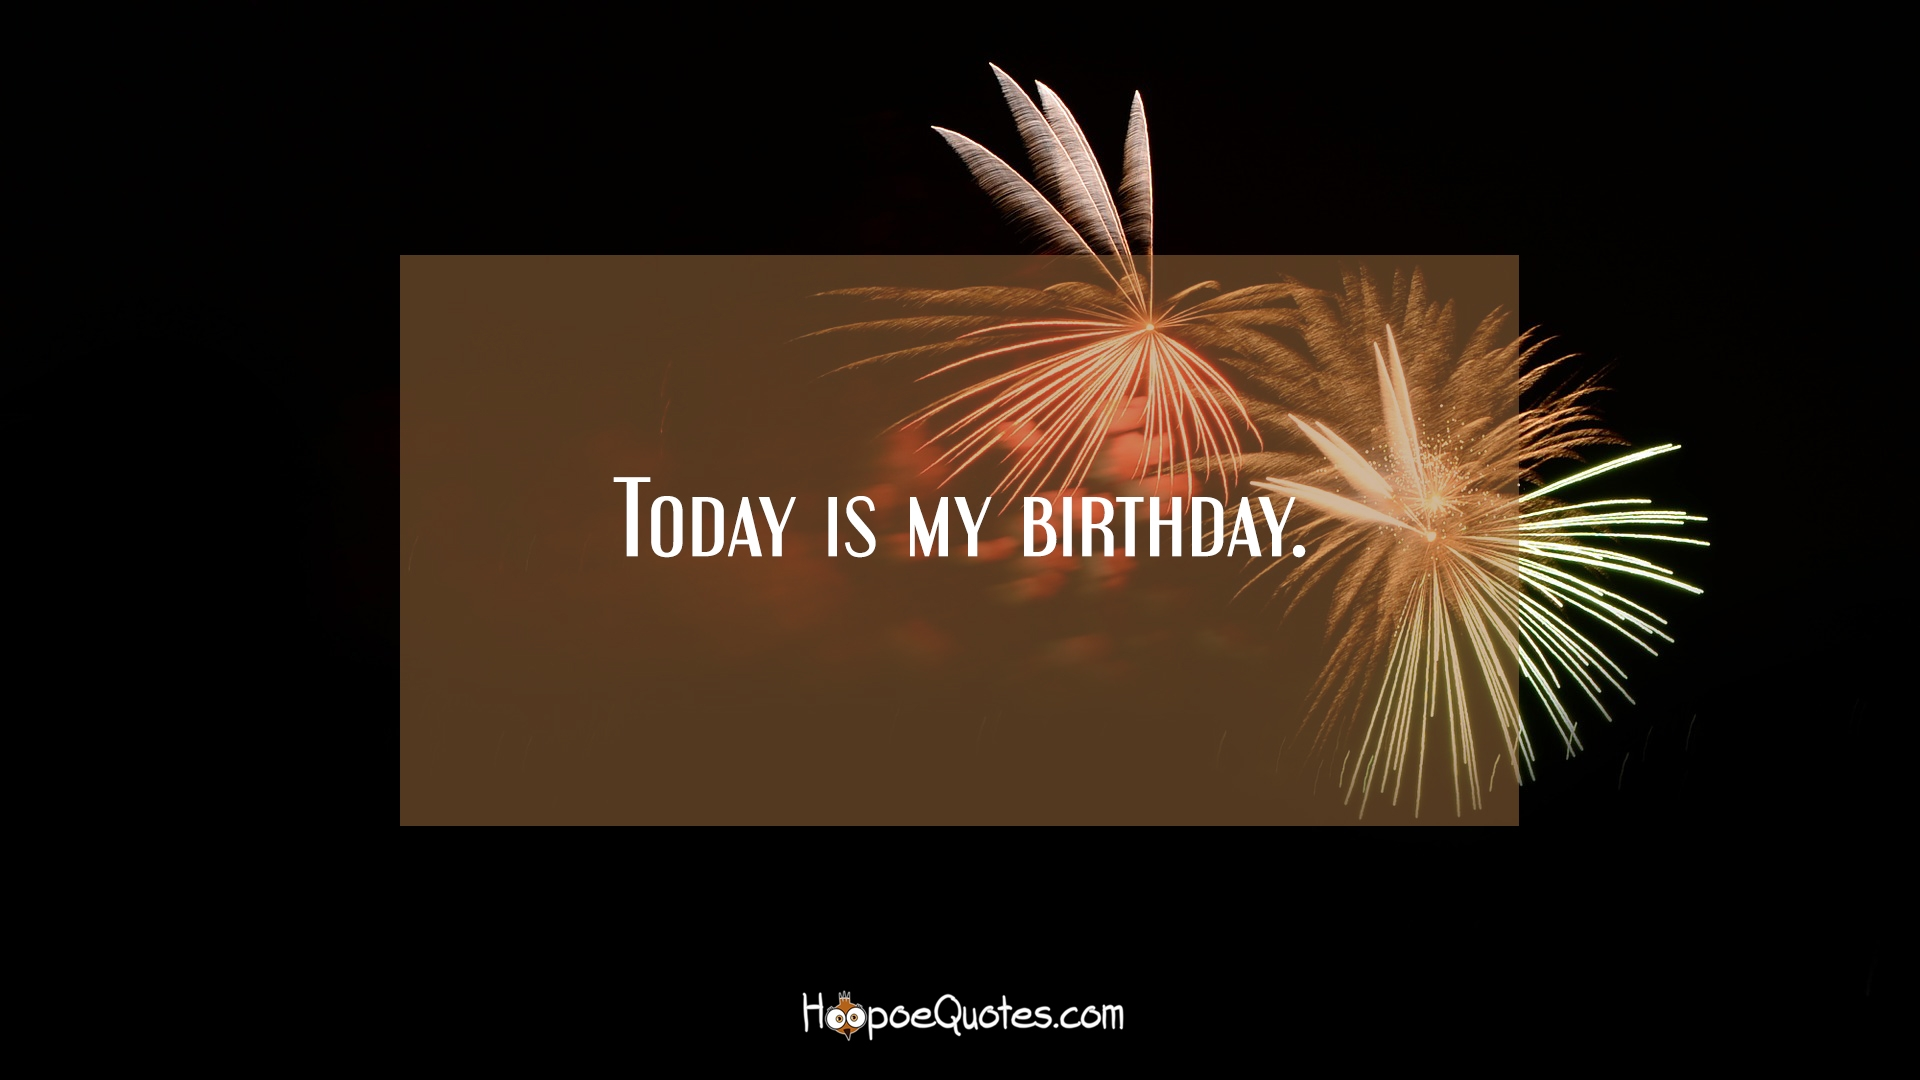 Today Is My Birthday HoopoeQuotes